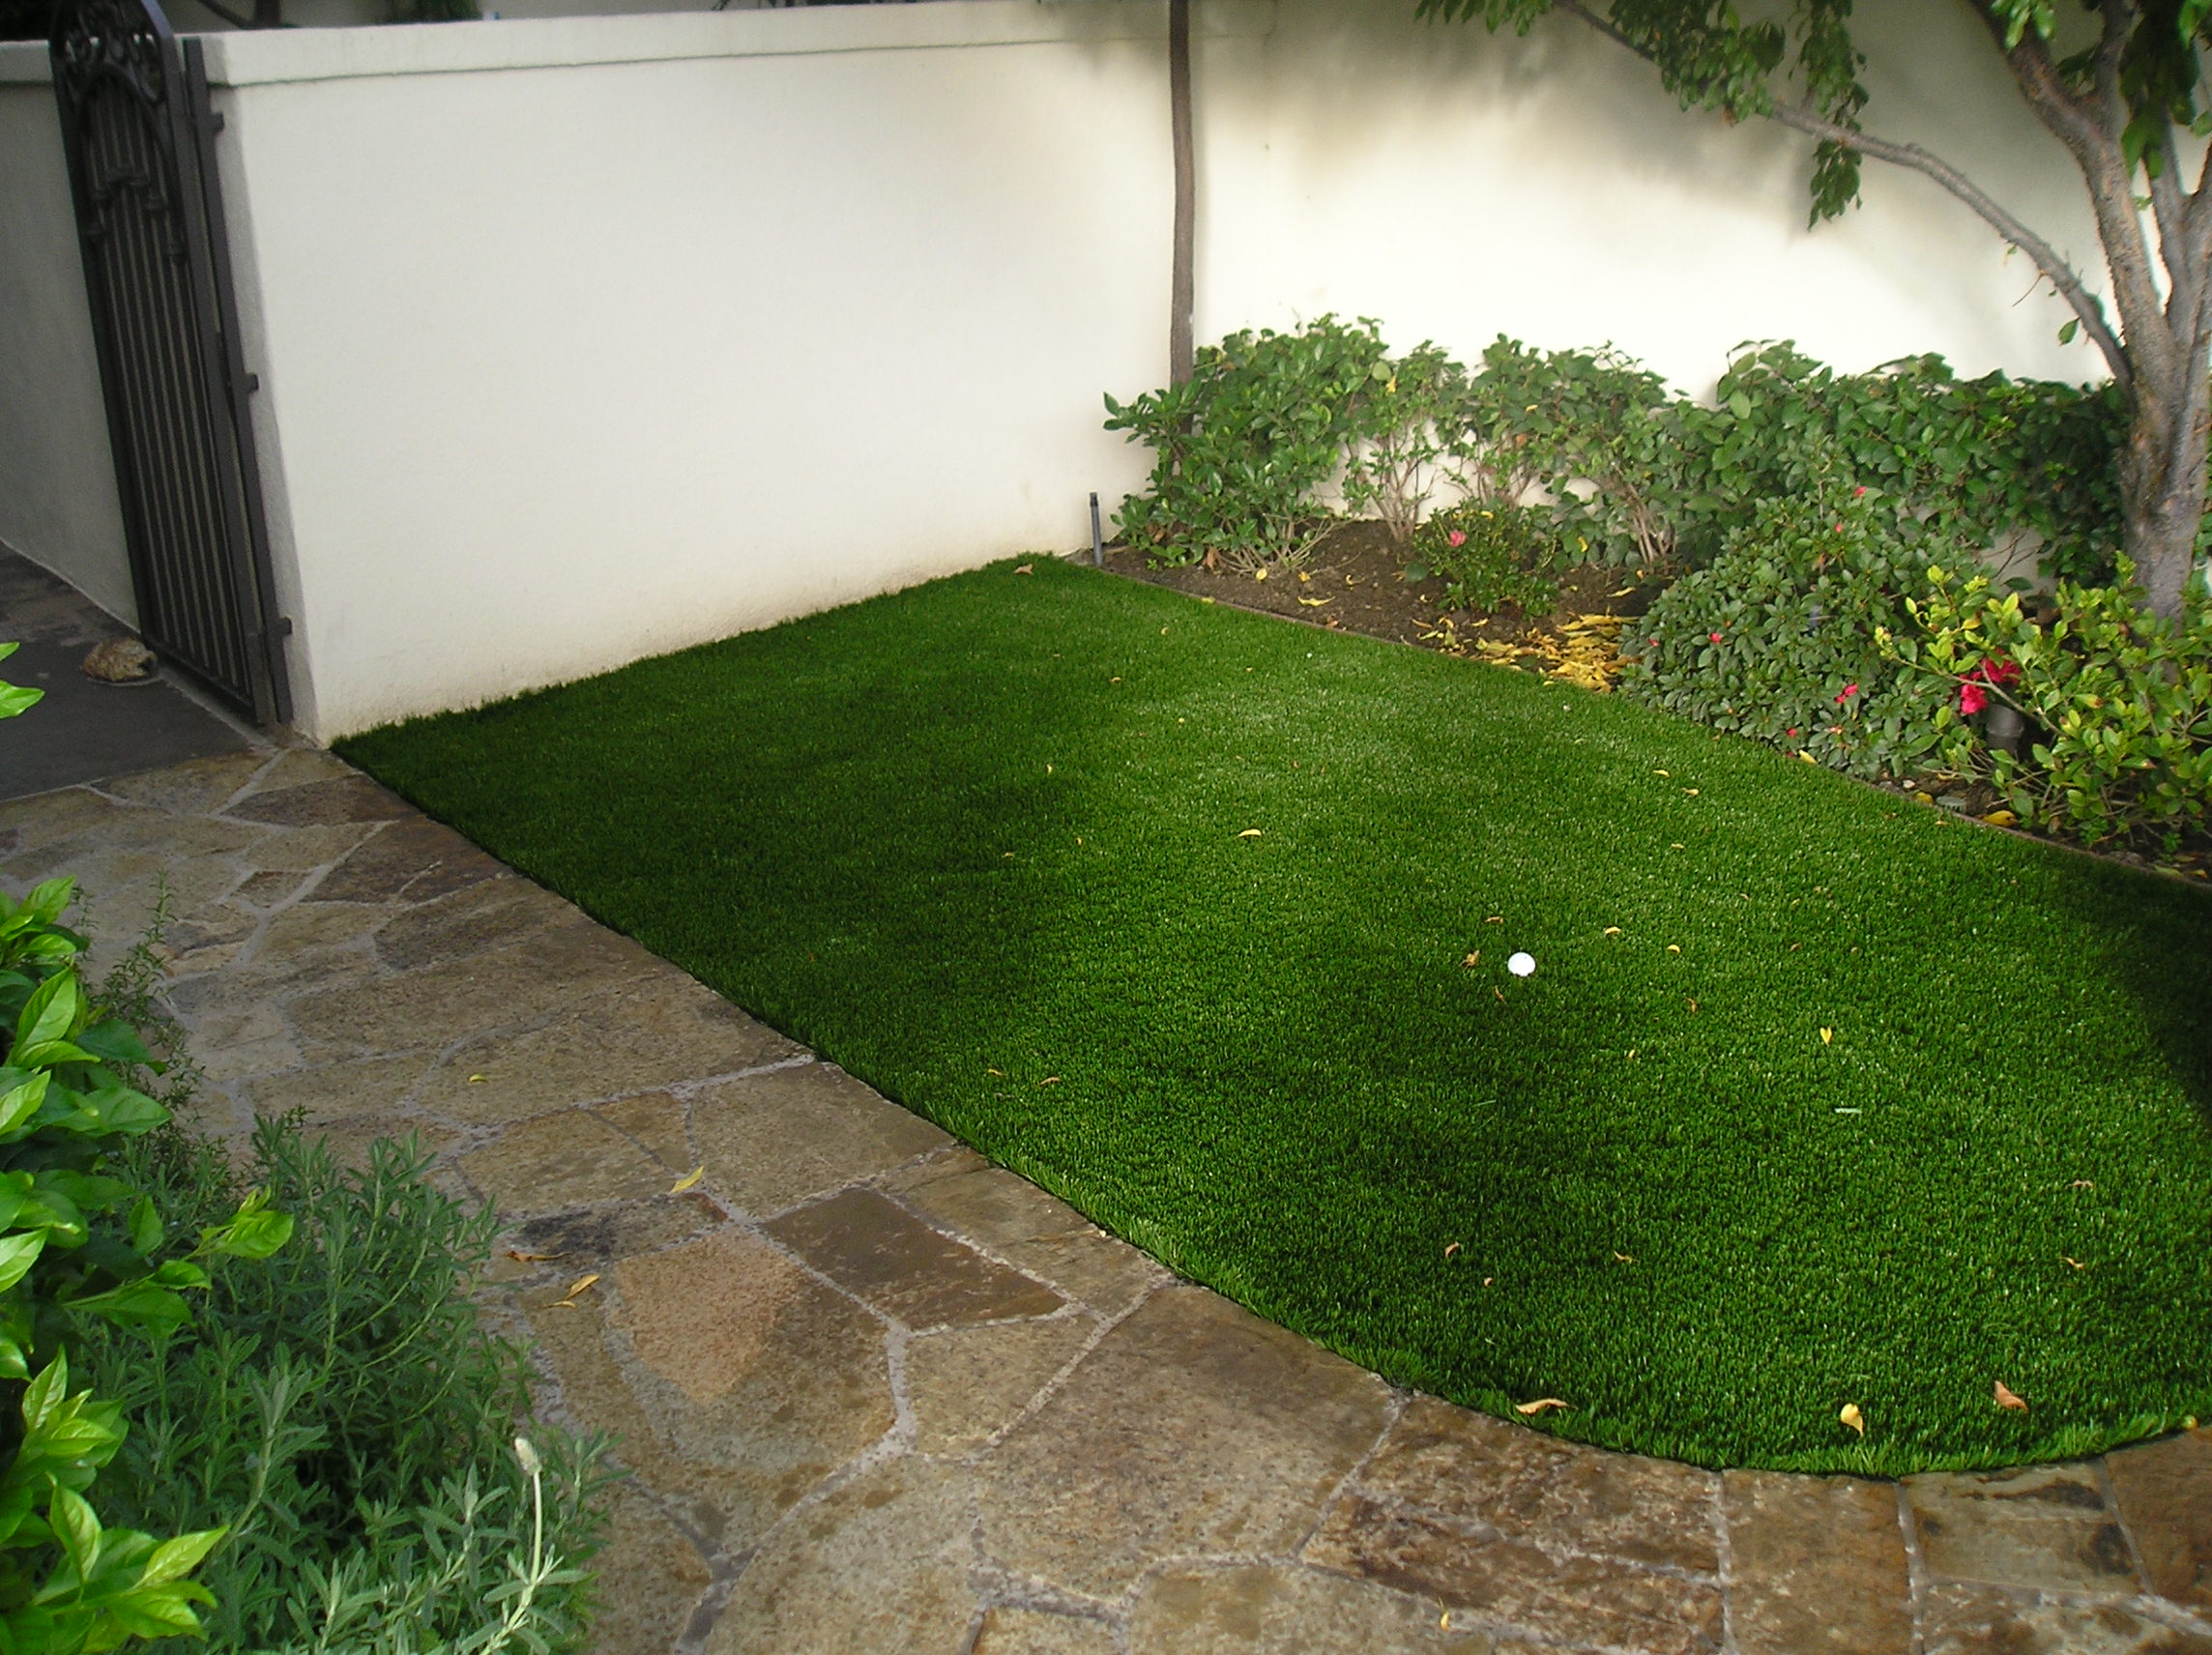 Cool Blue Hollow Olive artificial turf,synthetic turf,artificial turf installation,how to install artificial turf,used artificial turf